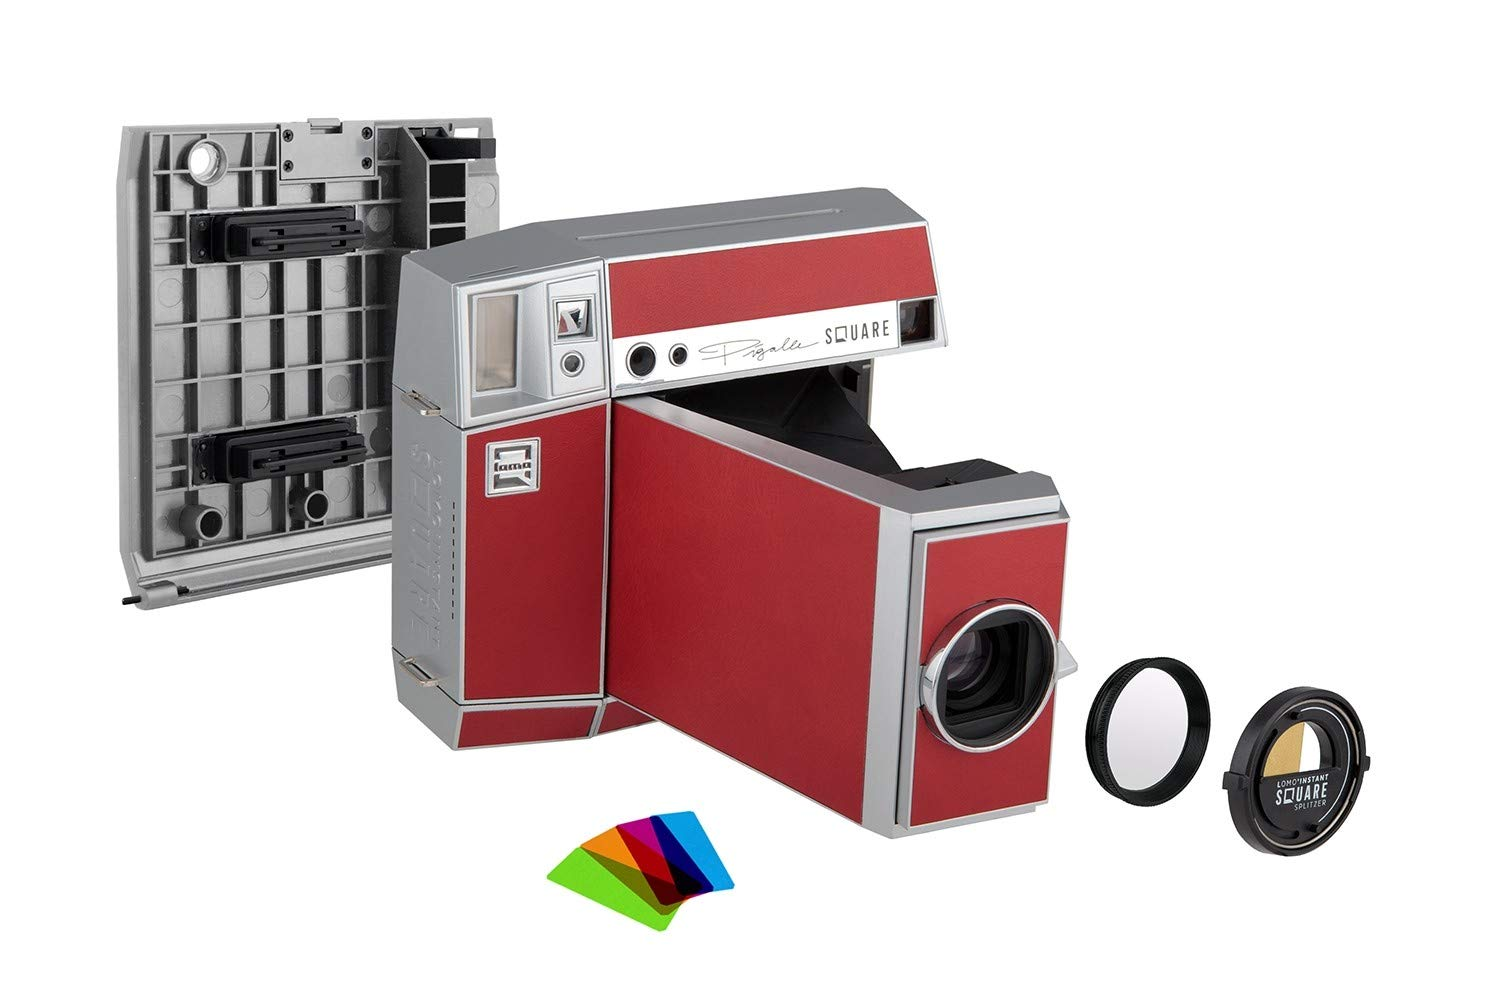 Lomography Lomo'Instant Square Glass Combo Pigalle - Instant Camera by Lomography (Image #1)